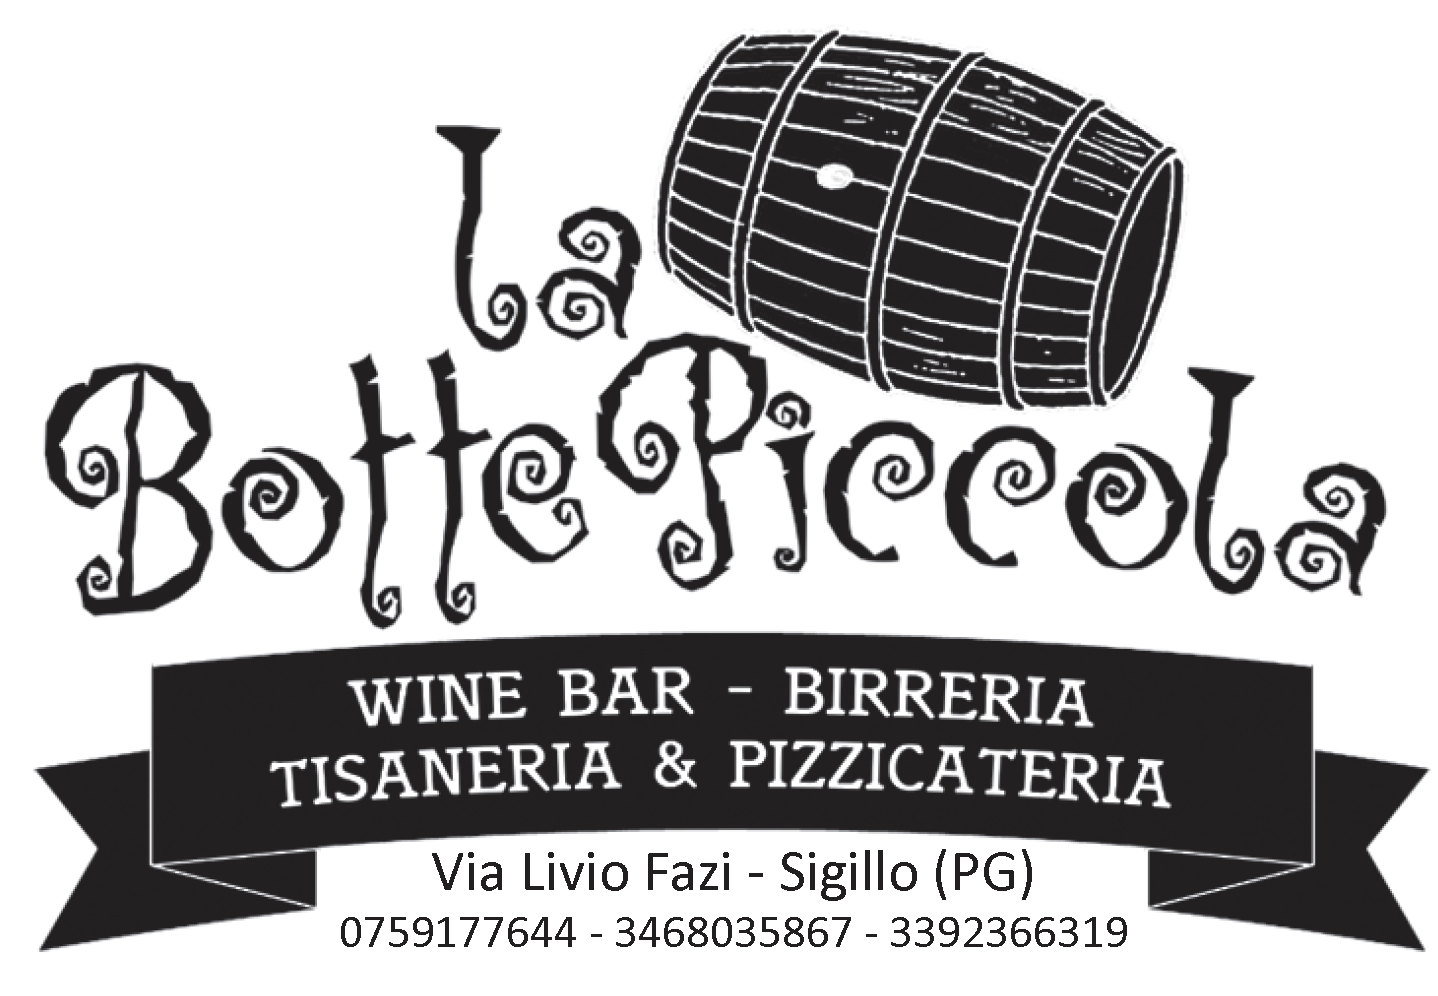 LA BOTTE PICCOLA - Via Livio Fazi - SIGILLO (Pg)Tel. +39 075.9177644 - +39 3468035867Facebook